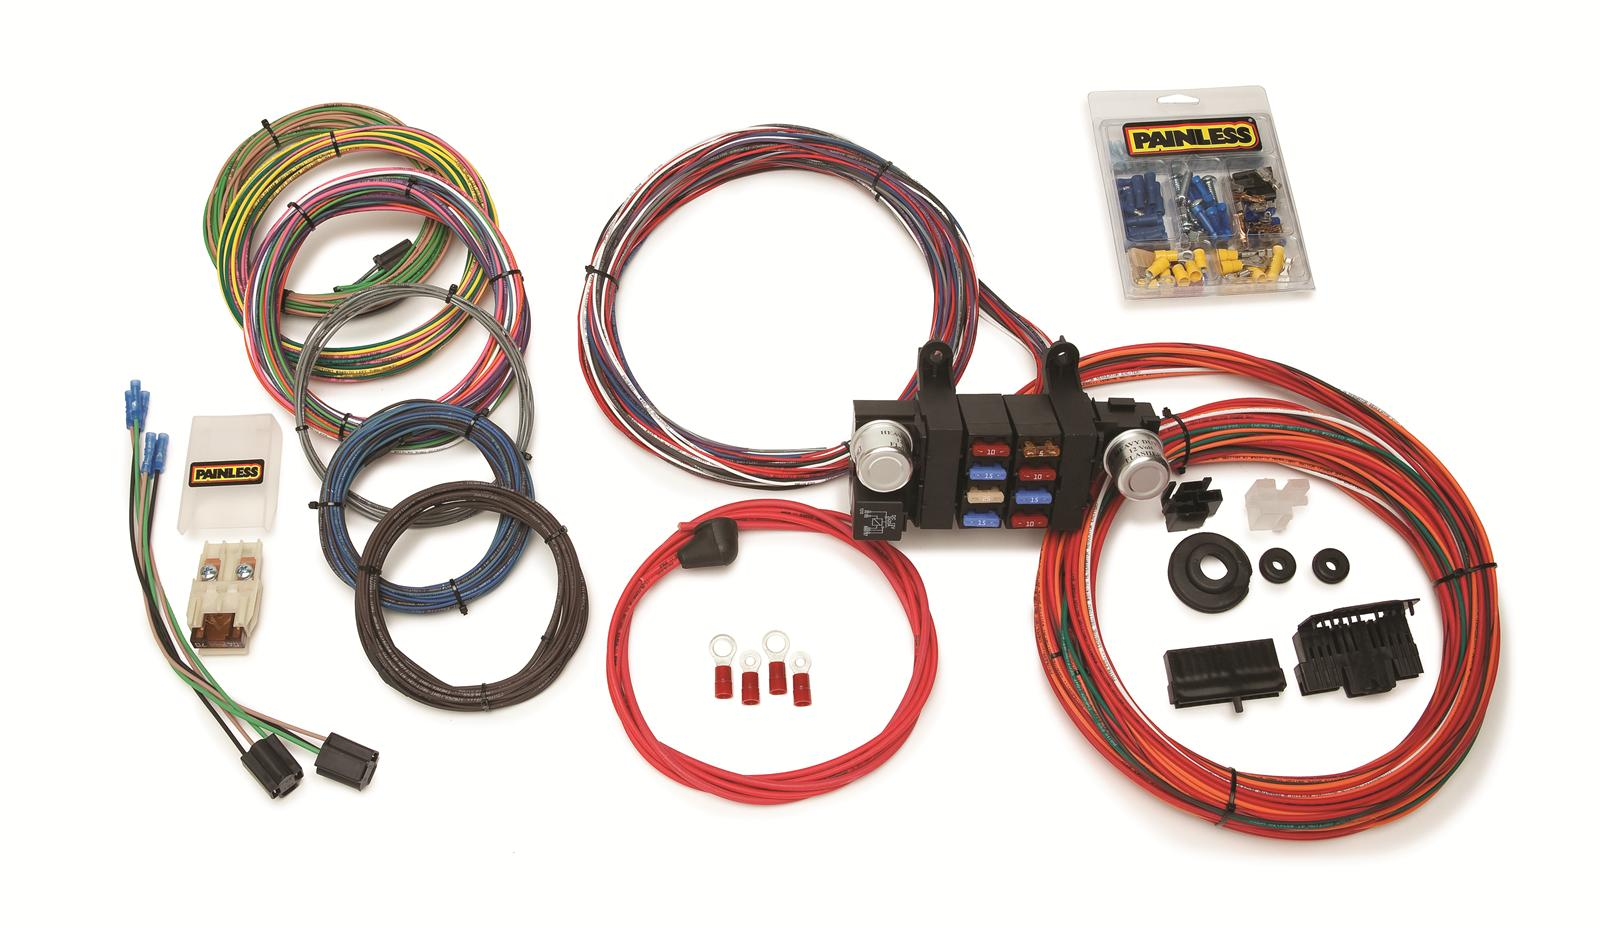 painless performance 18 circuit modular chassis harnesses 10308 rh summitracing com 8 circuit wiring harness with switches rebel wire 8 circuit wiring harness